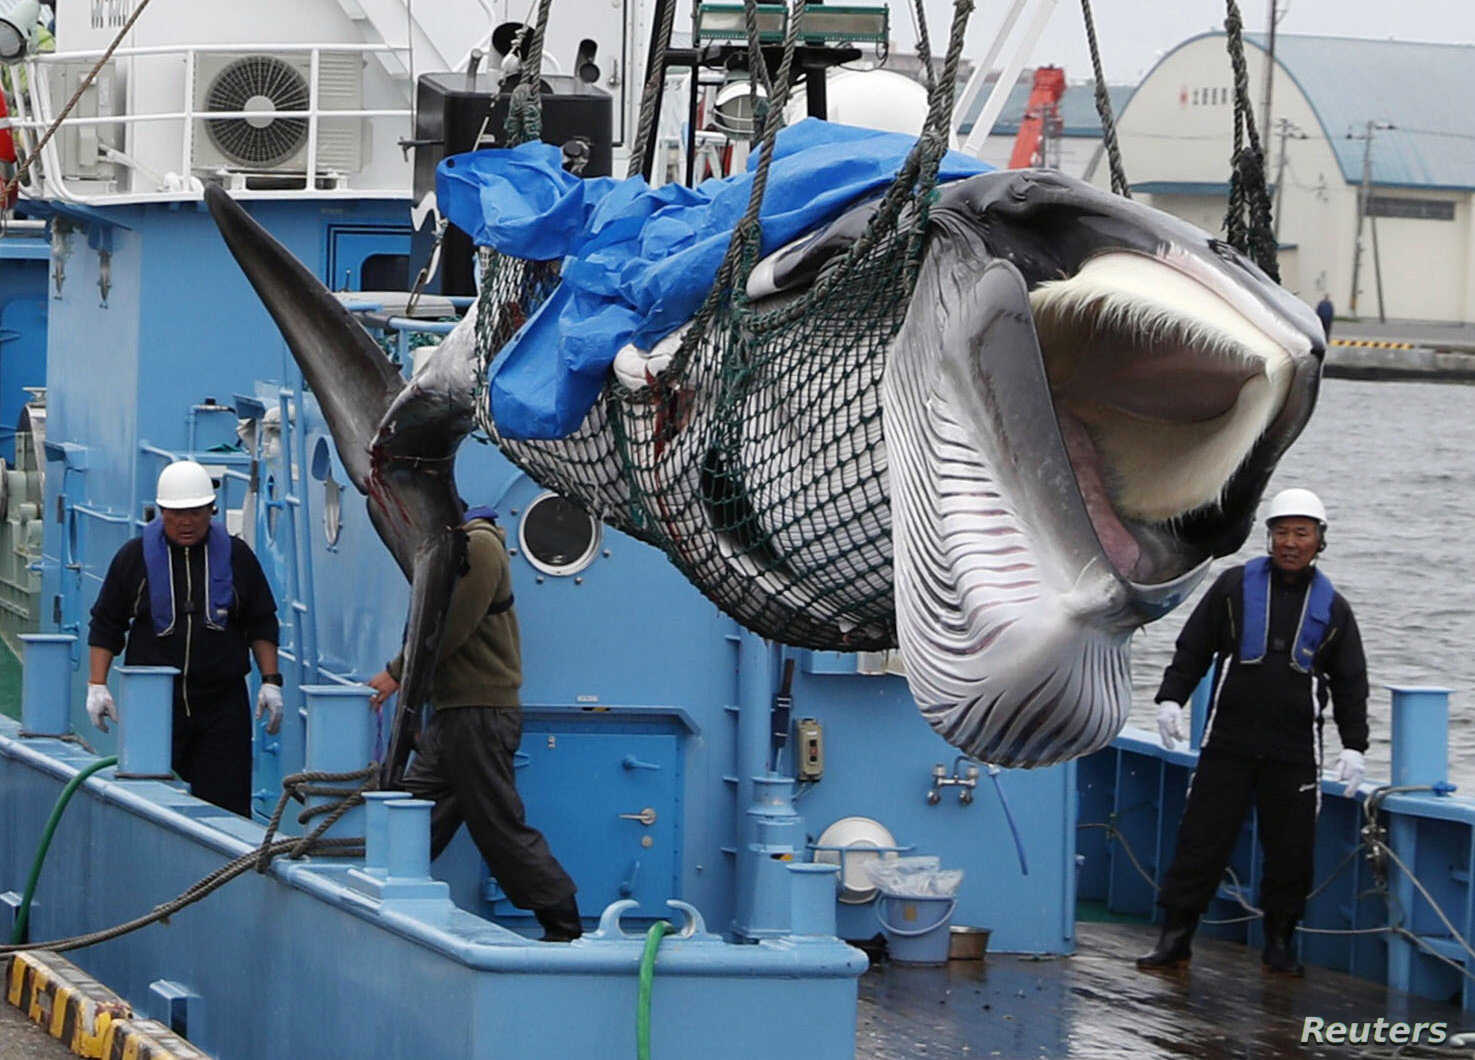 A captured Minke whale is unloaded after commercial whaling at a port in Kushiro, Hokkaido Prefecture, Japan, in this photo taken by Kyodo.